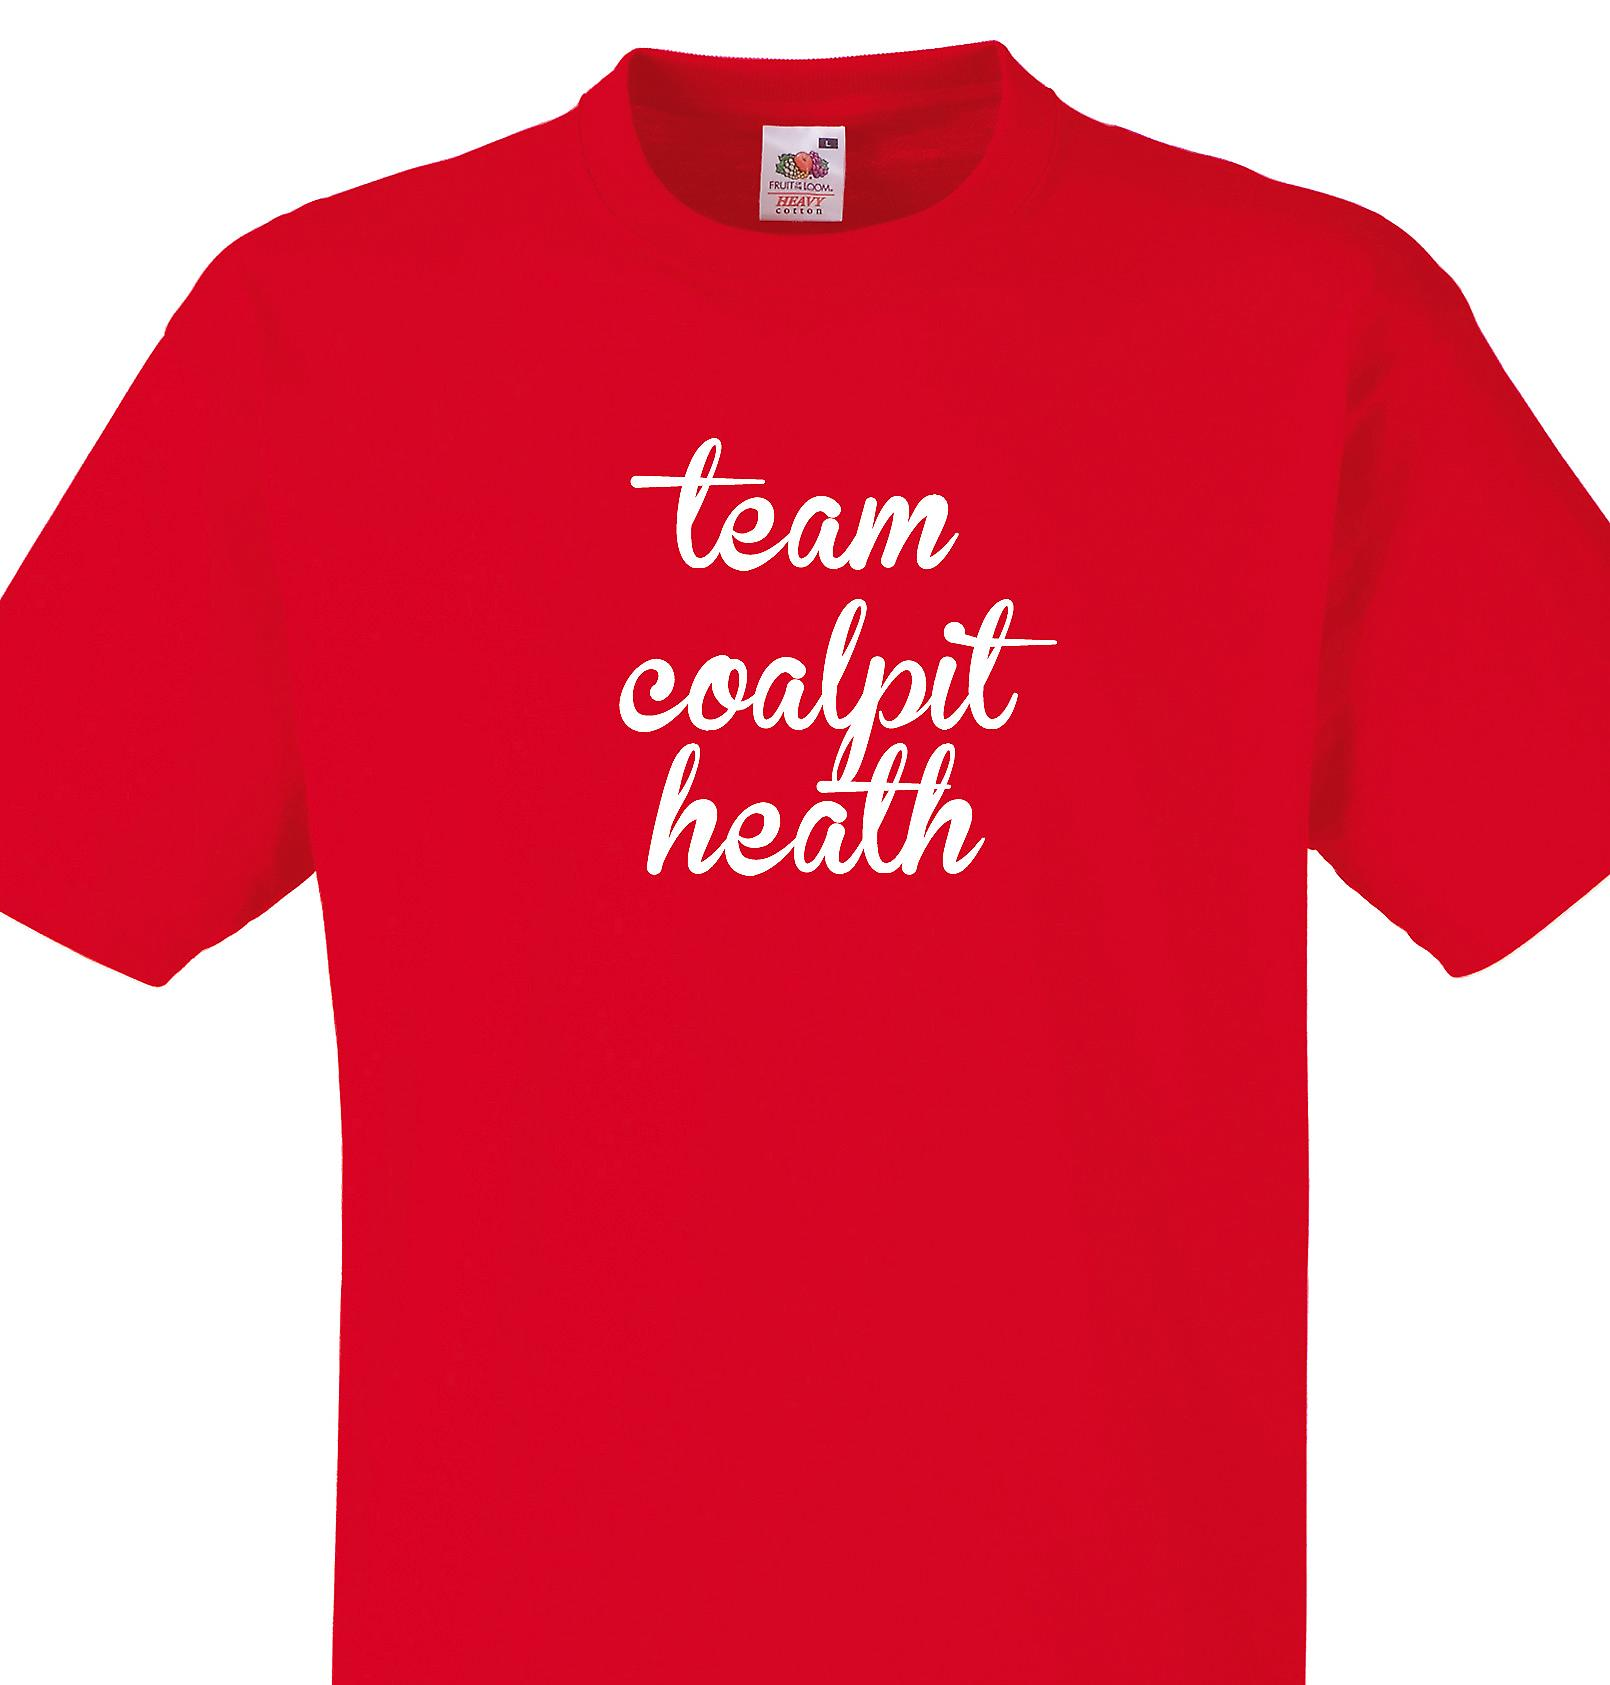 Team Coalpit heath Red T shirt